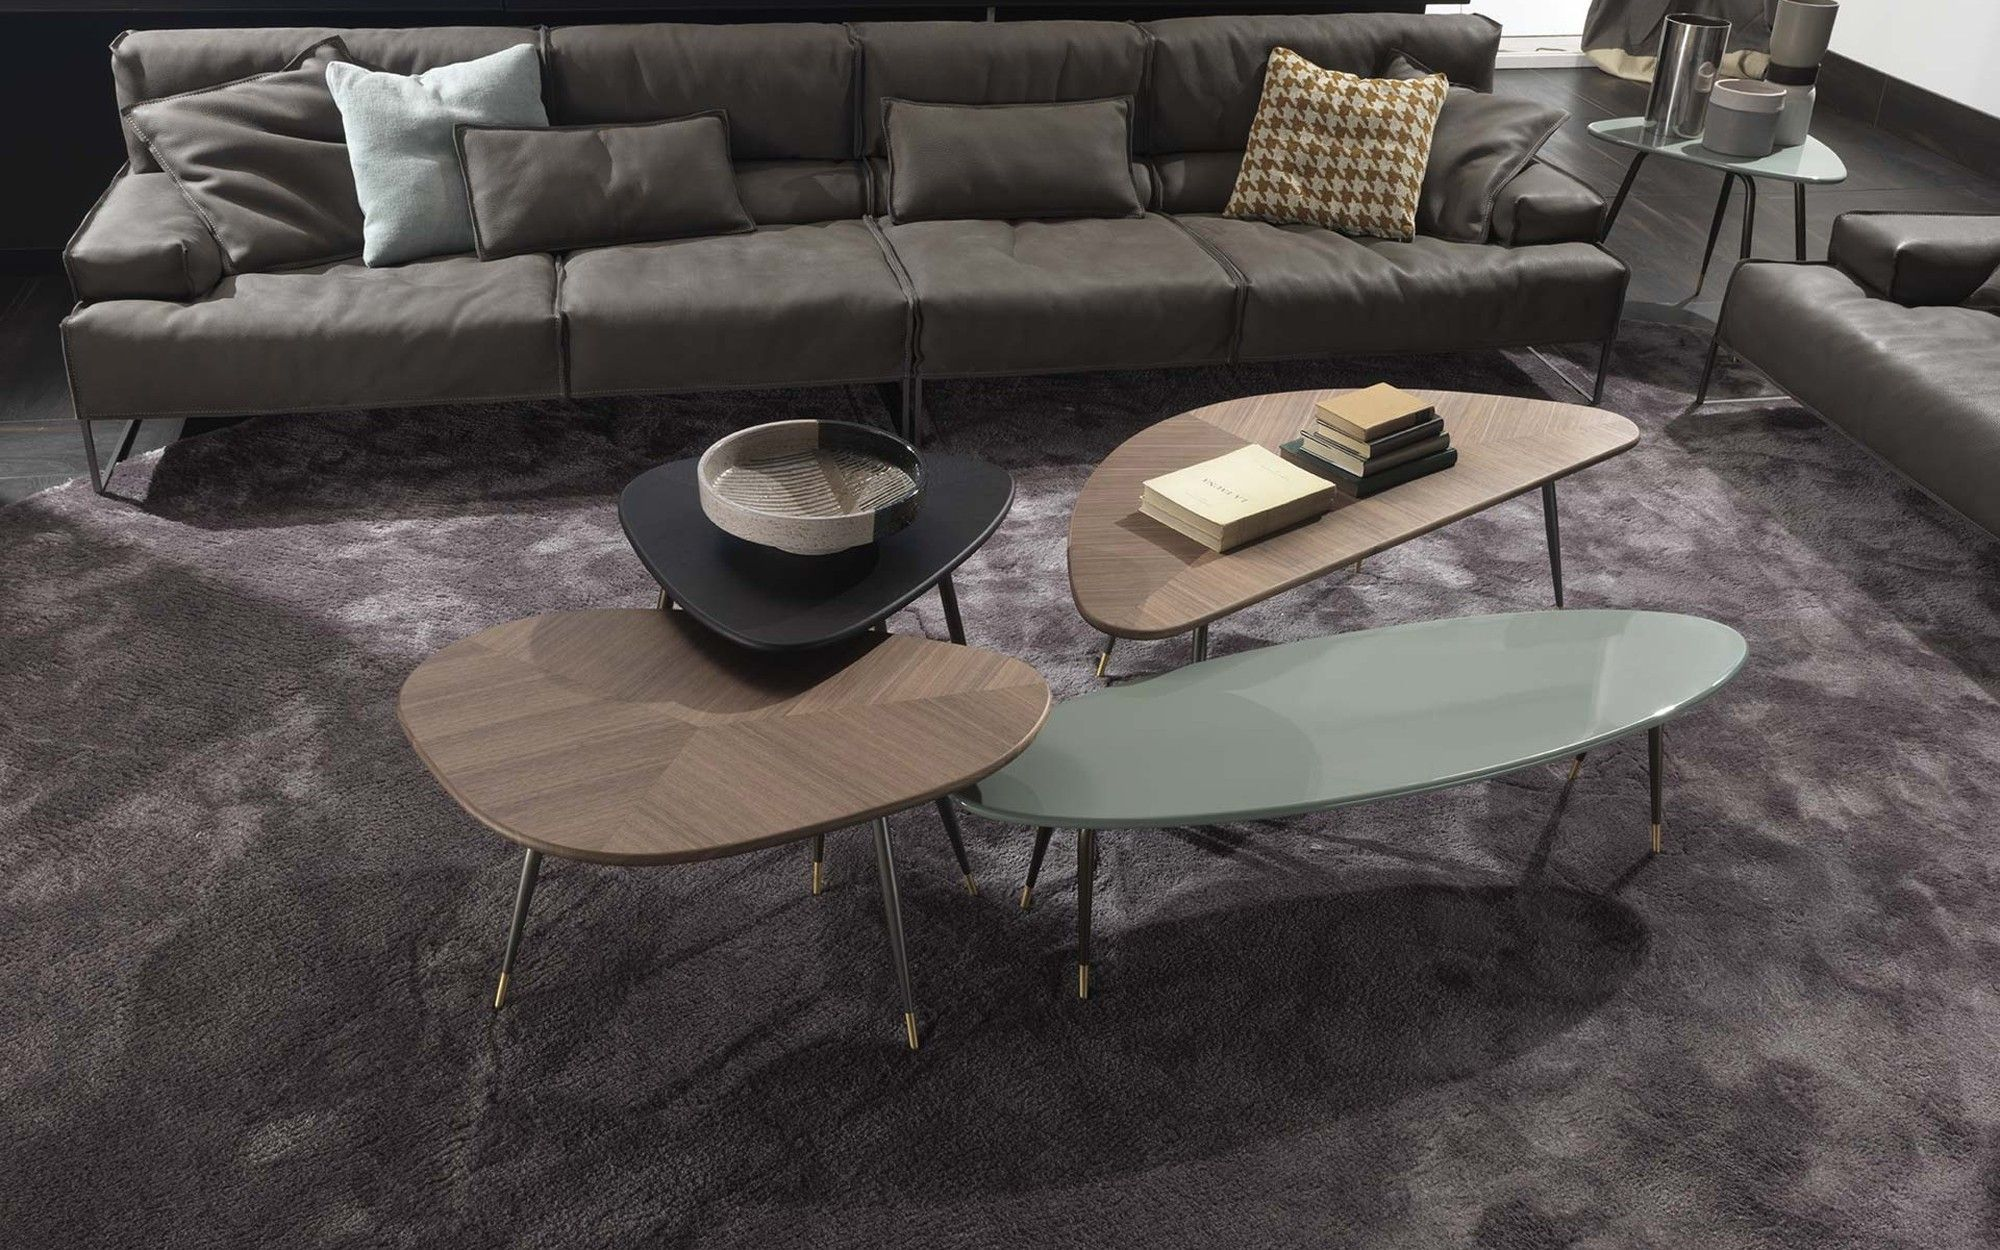 Smart Coffee Table By Rimadesio, From Pure Interiors.